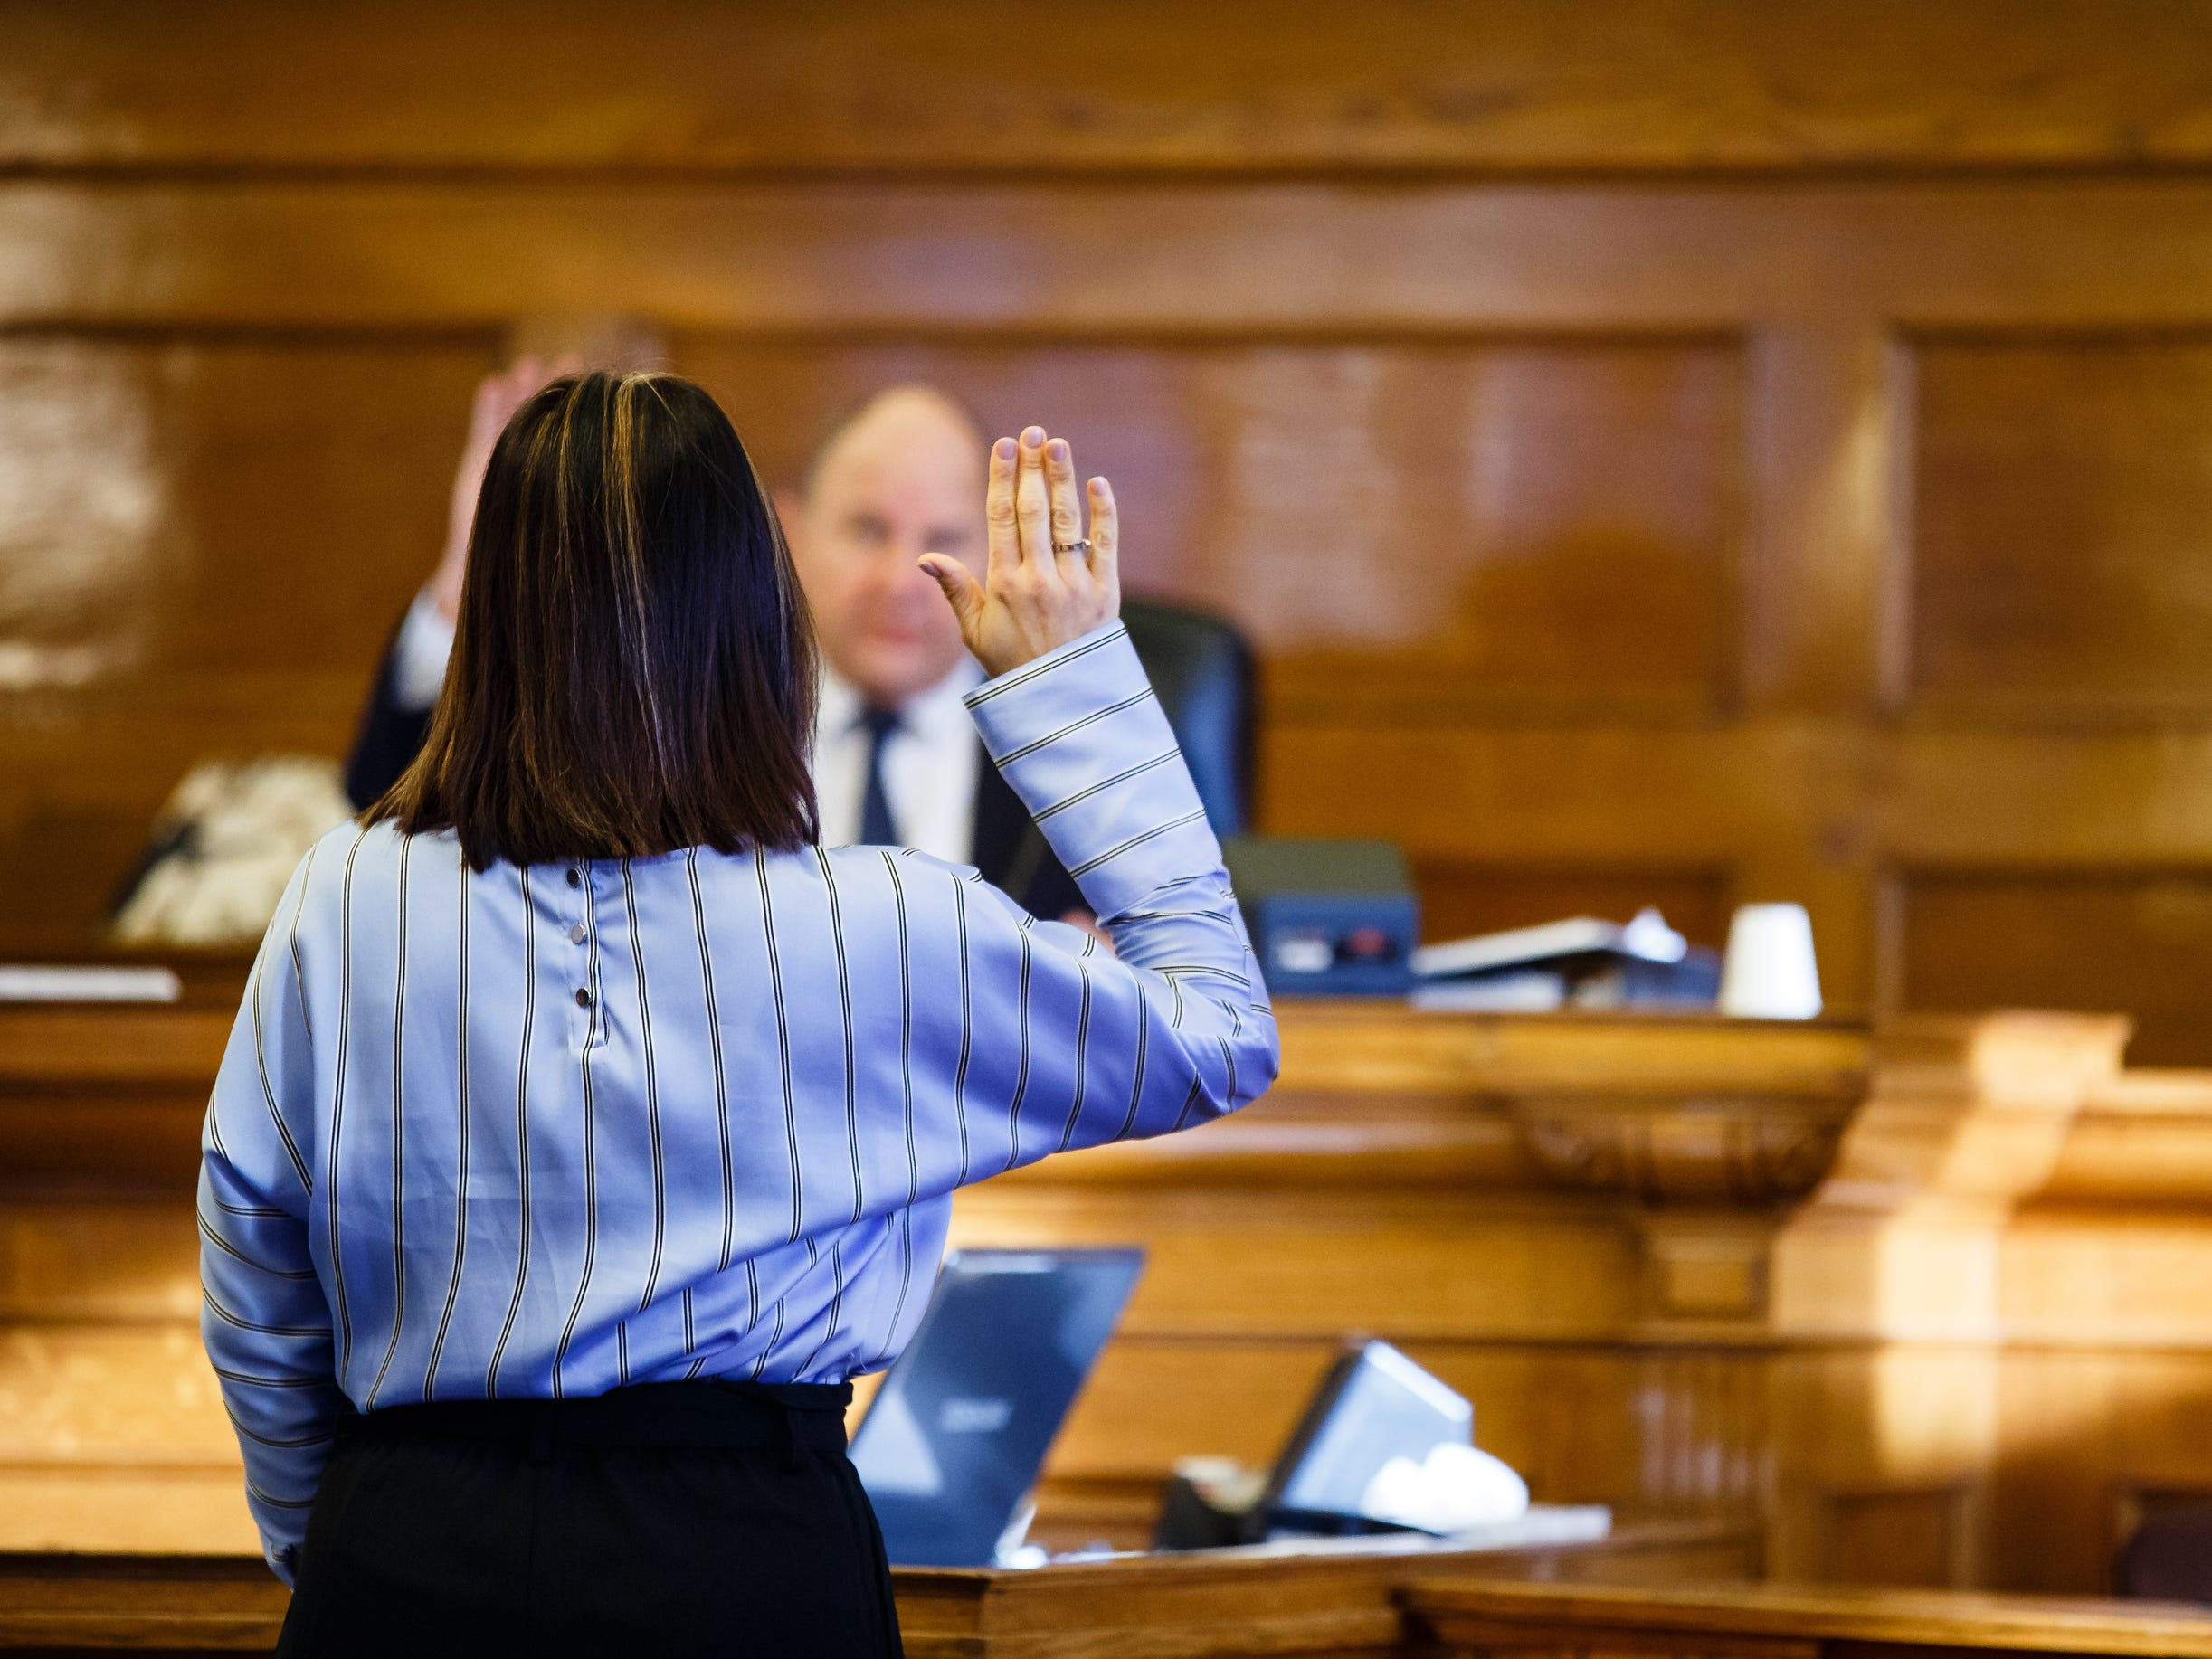 Gina Battani raises her right hand as she is sworn in before giving testimony against her ex-husband Troy Griffin at the Dallas County Courthouse on Tuesday, Oct. 23, 2018, in Adel. The Dallas County jury found Griffin not guilty of raping Battani.